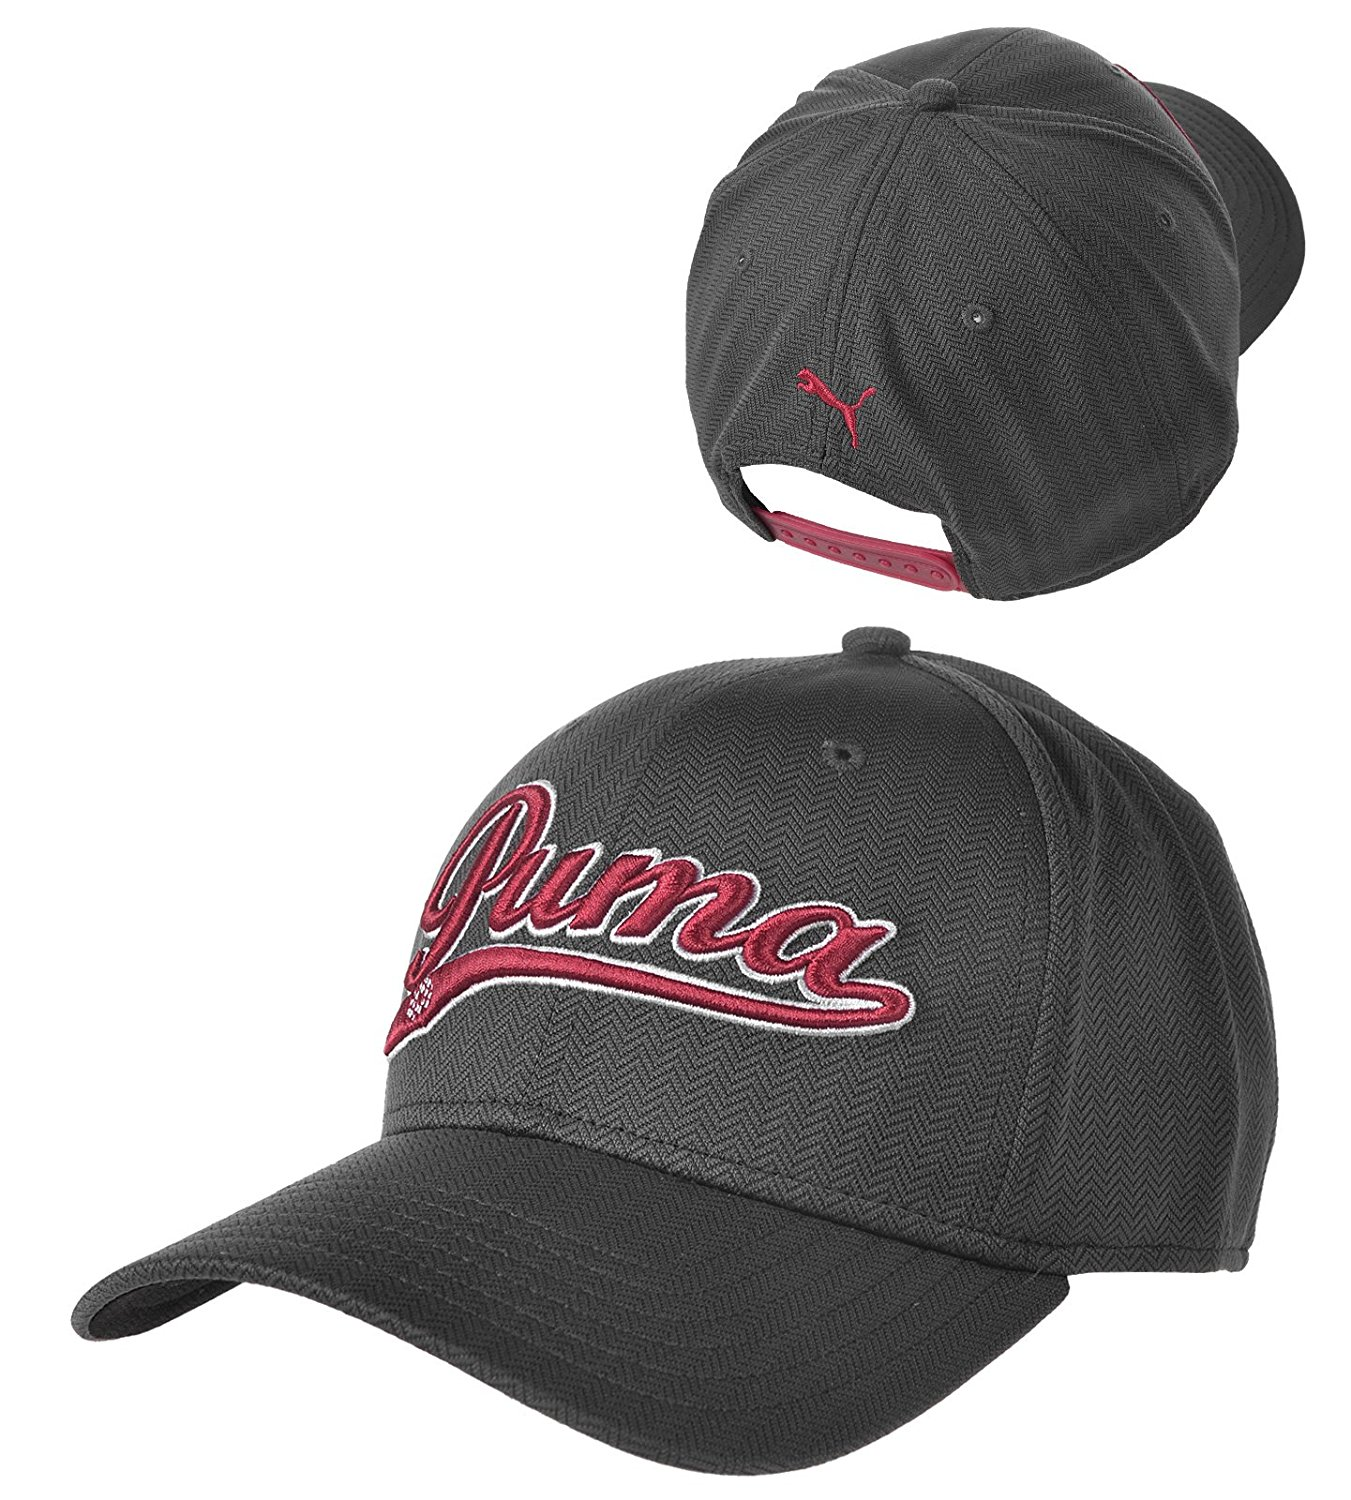 36483d9954bbd Get Quotations · PUMA SCRIPT COOL CELL RELAXED ADJUSTABLE HAT CAP 2014-  PICK A COLOR!